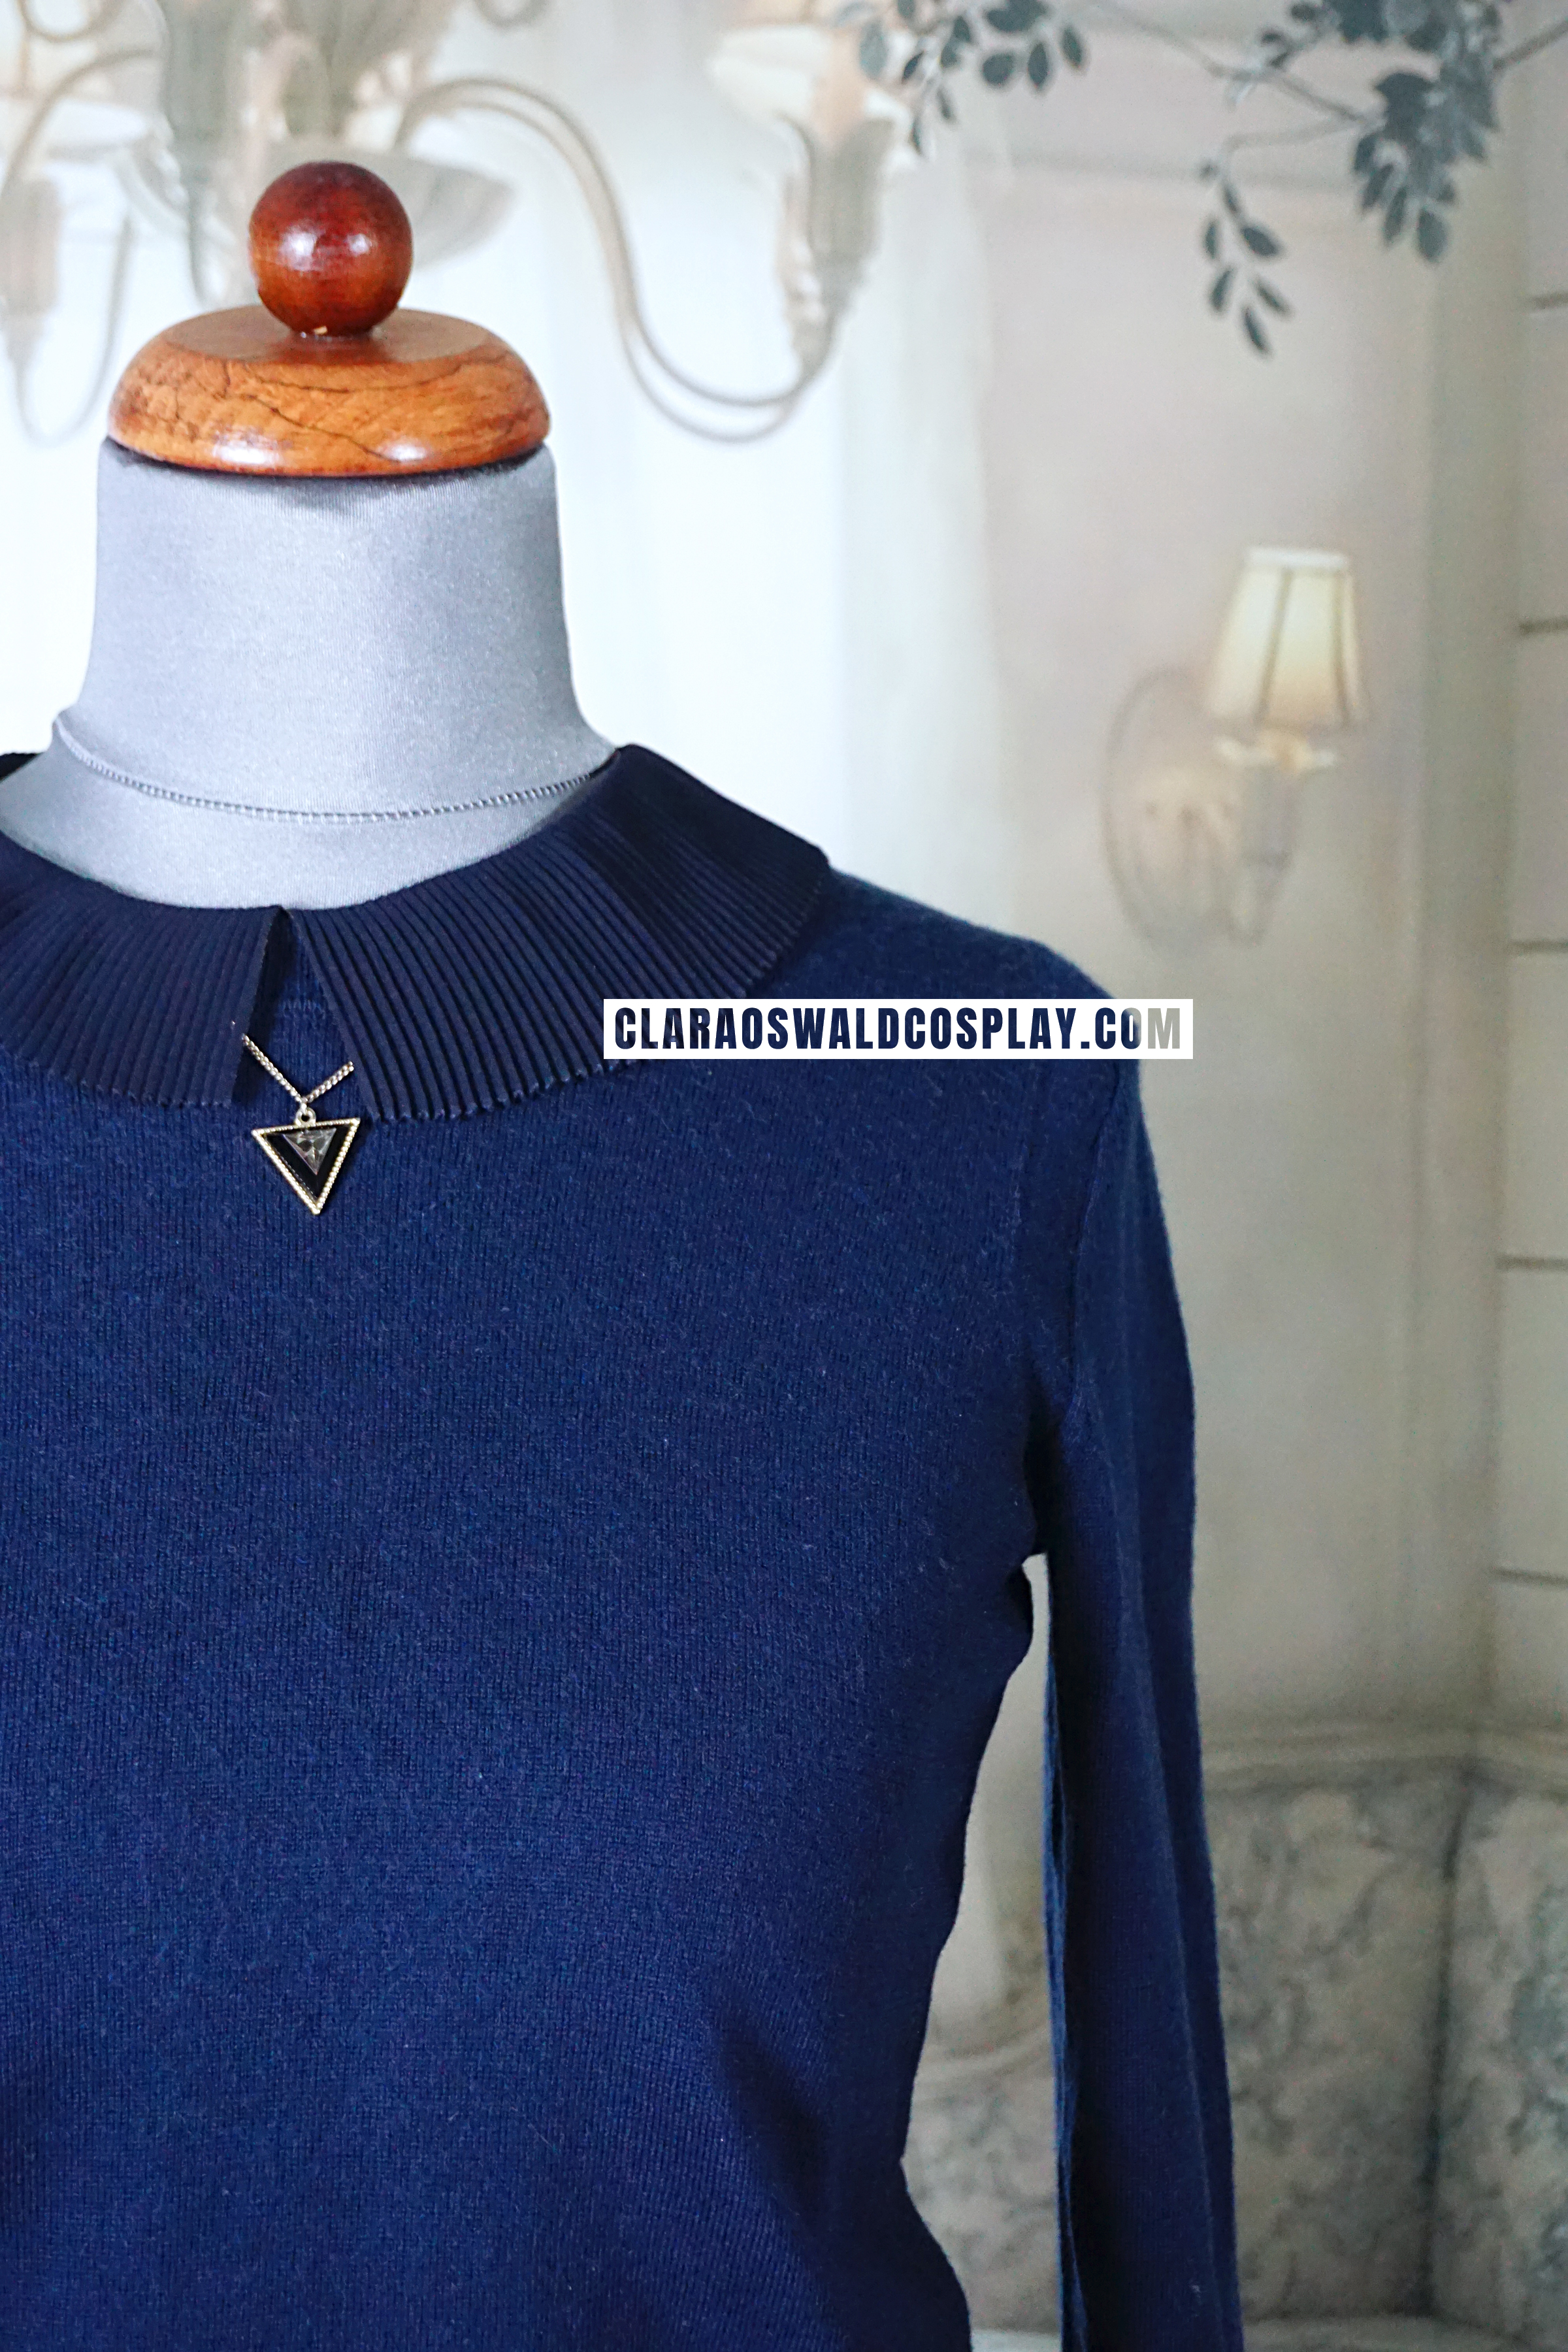 The Triangle Necklace is worn under the collar of the Claudie Pierlot Brooklyn Blouse and on top of the GAP Merino Jumper